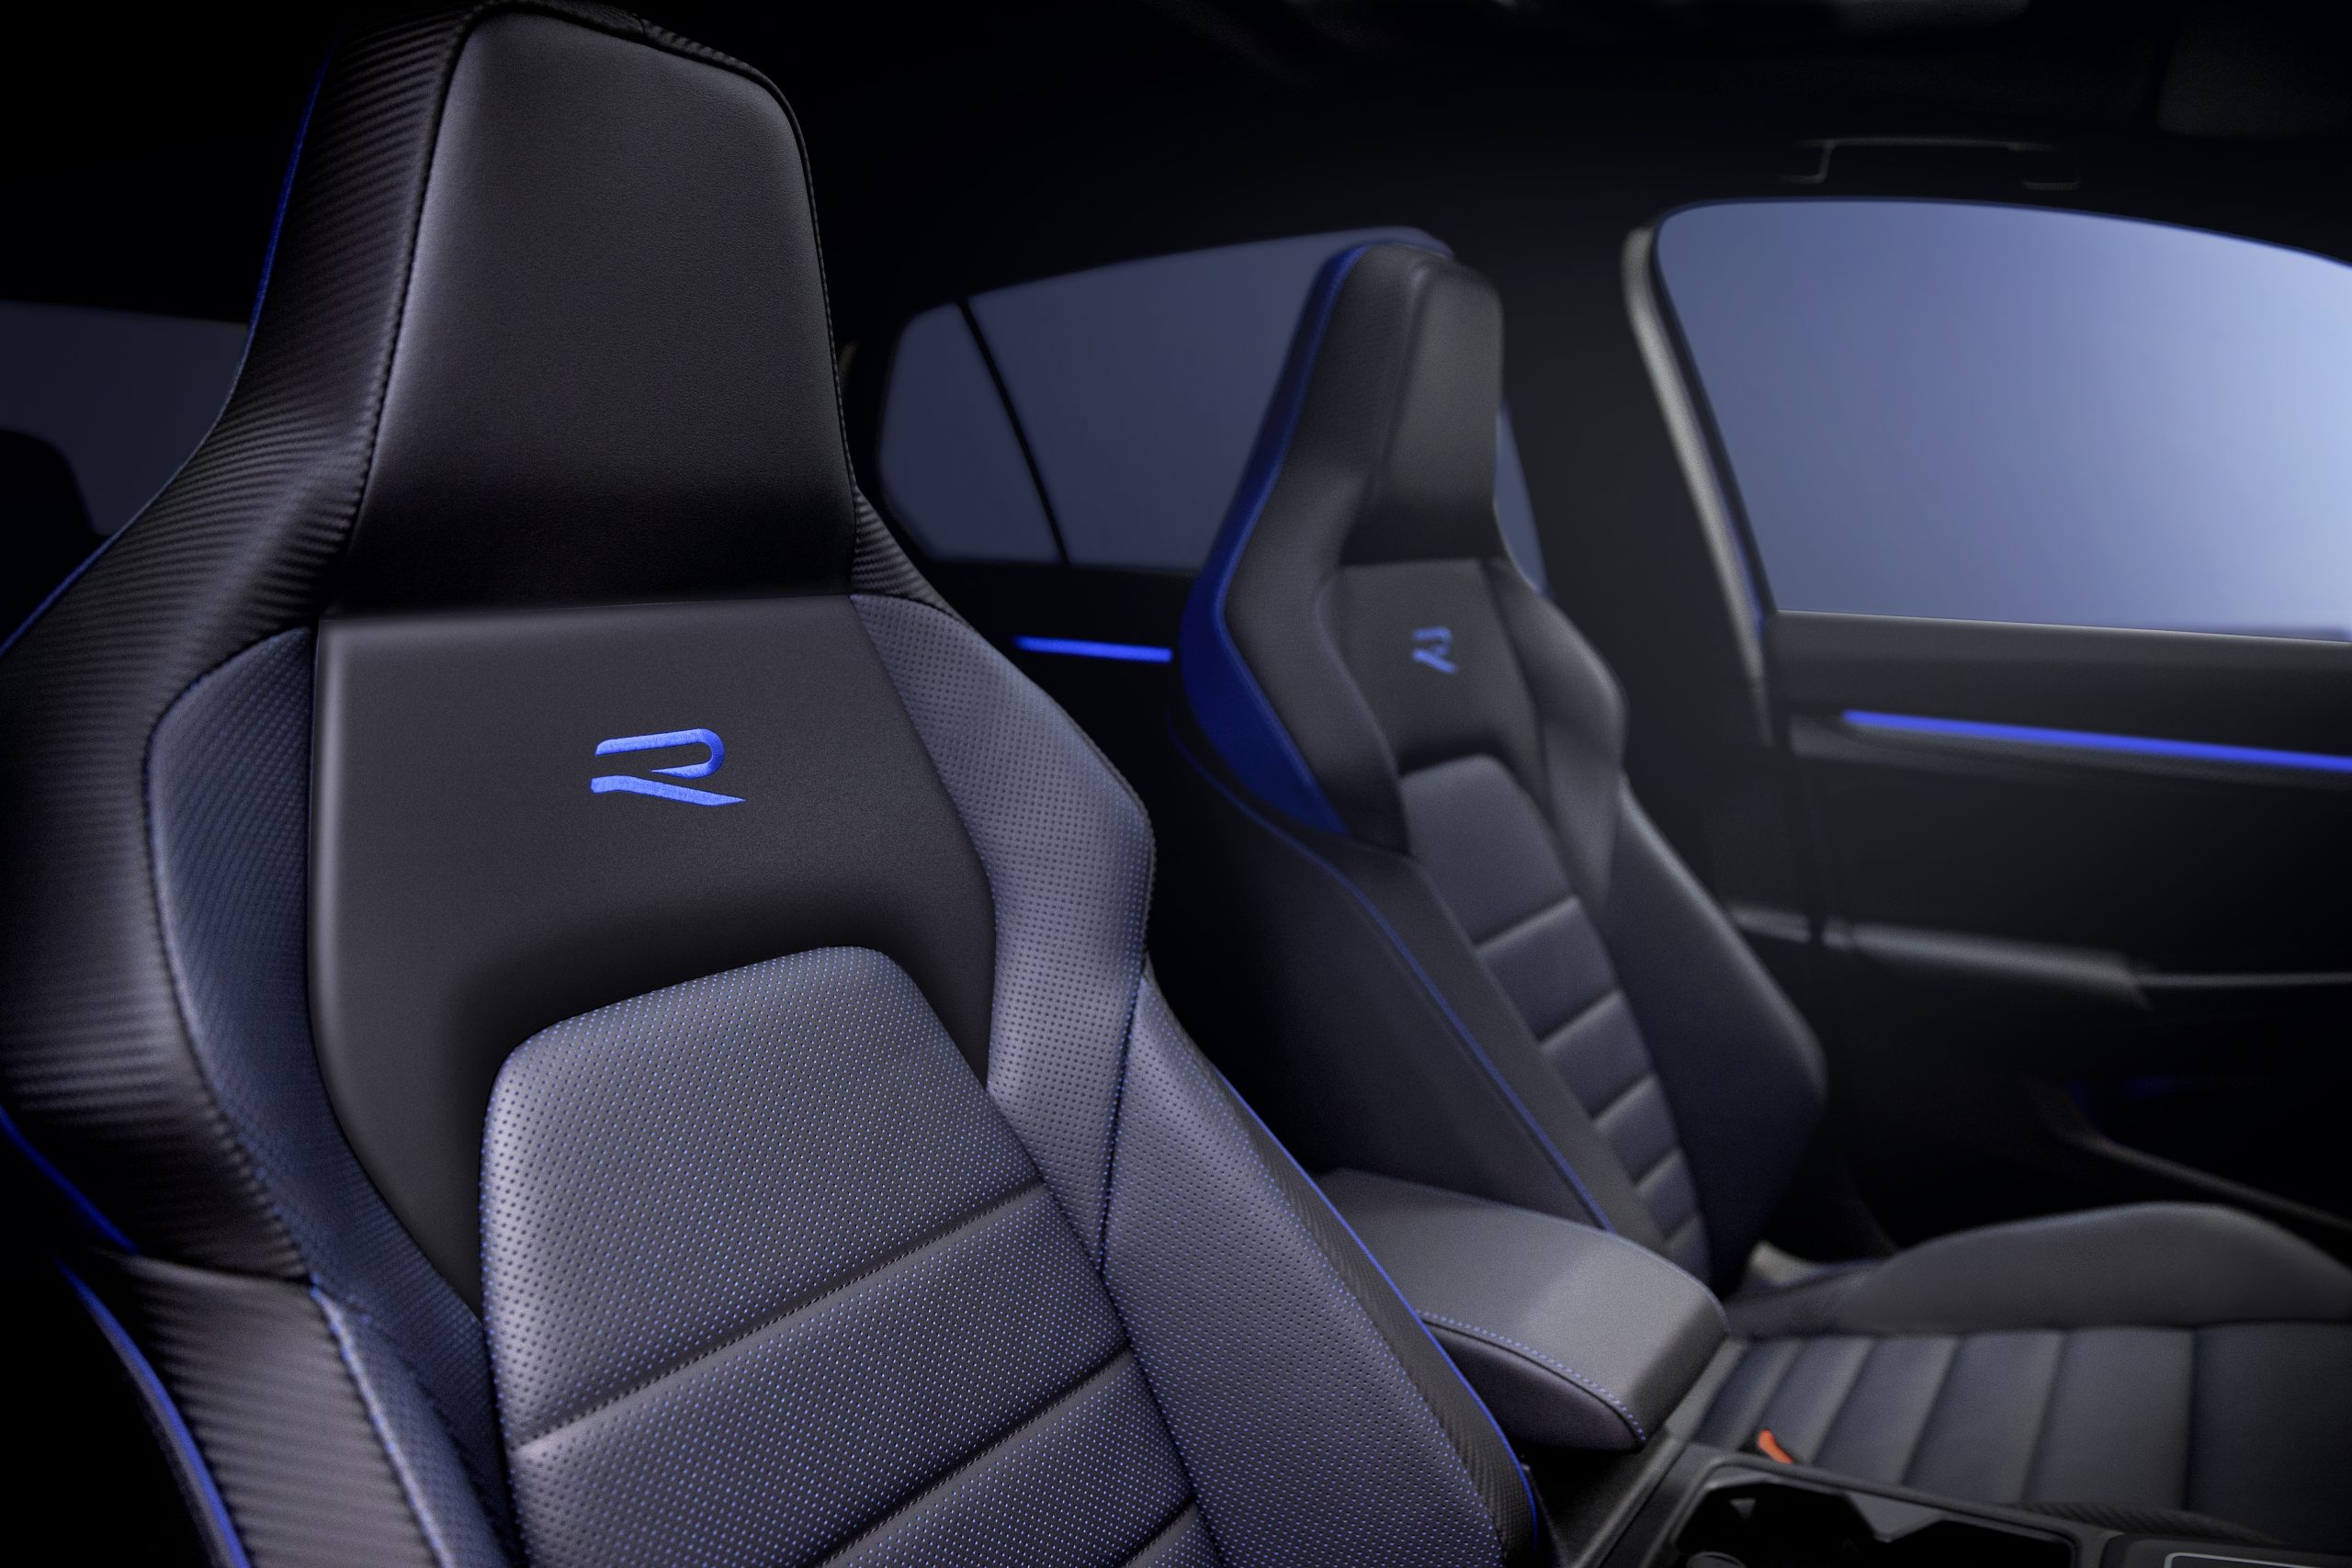 Golf R interior seat embroidery detail